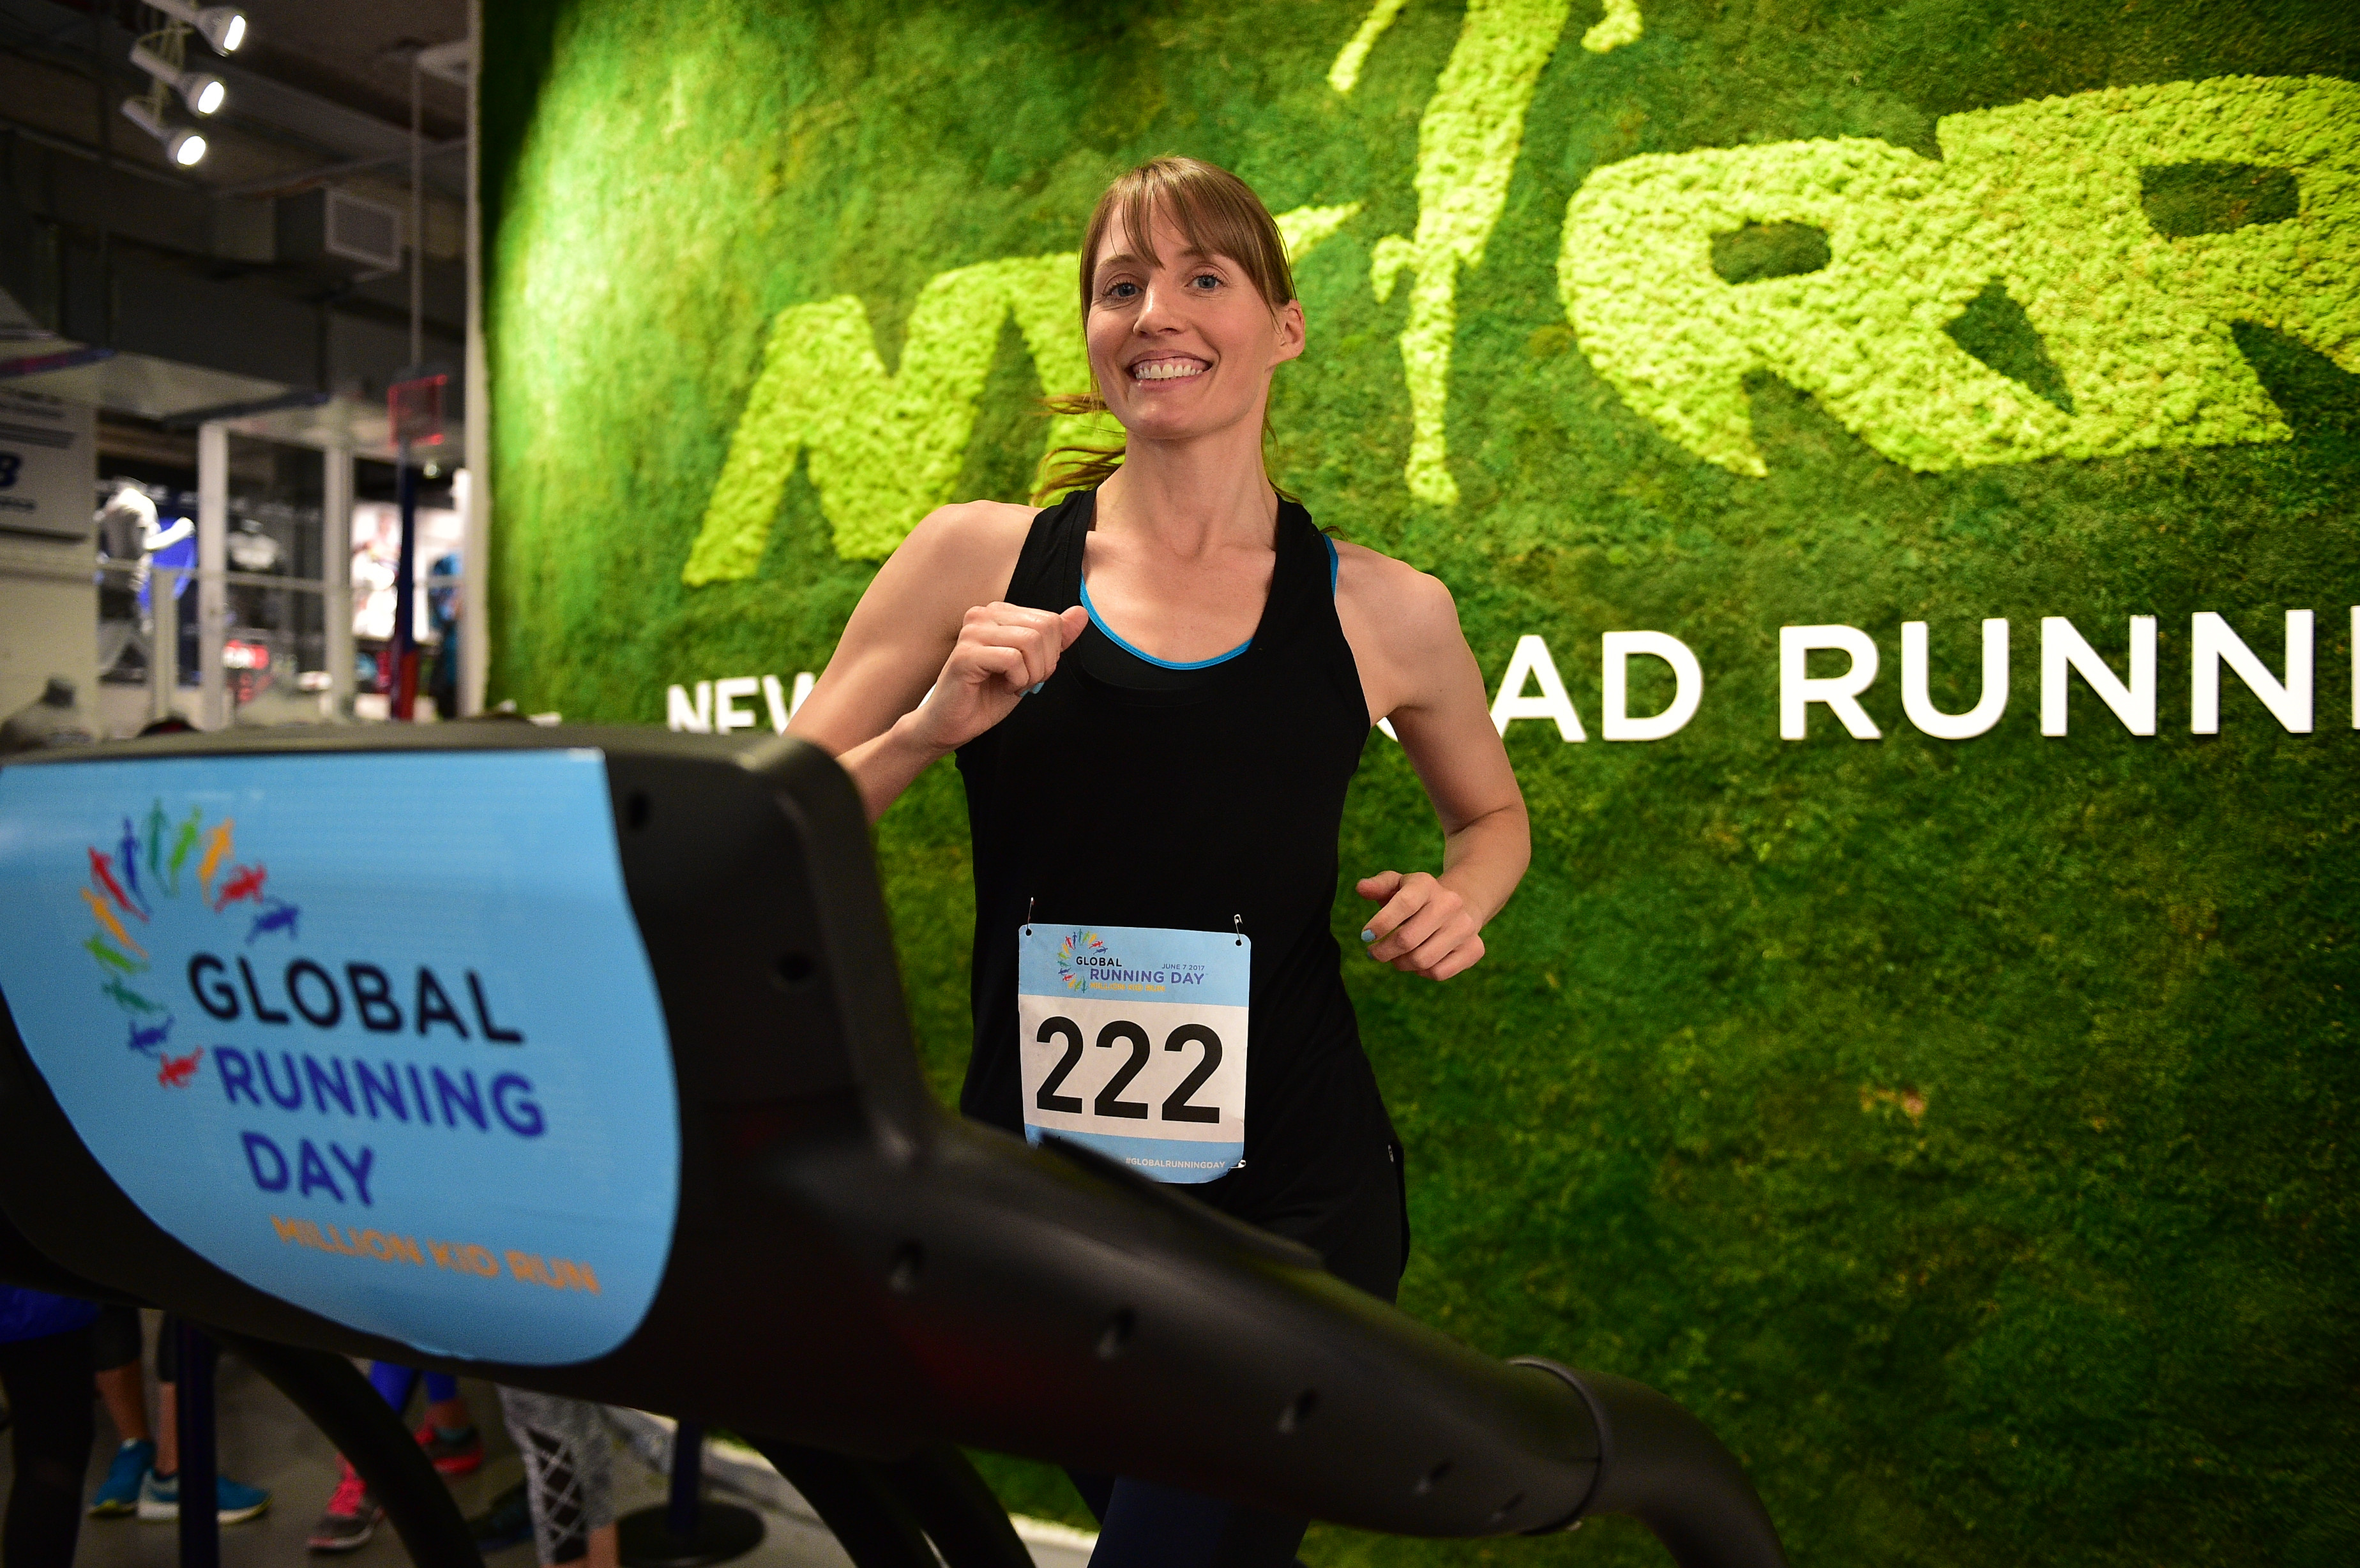 A runner in the Global Running Day Treadmill Challenge at the NYRR RUNCENTER